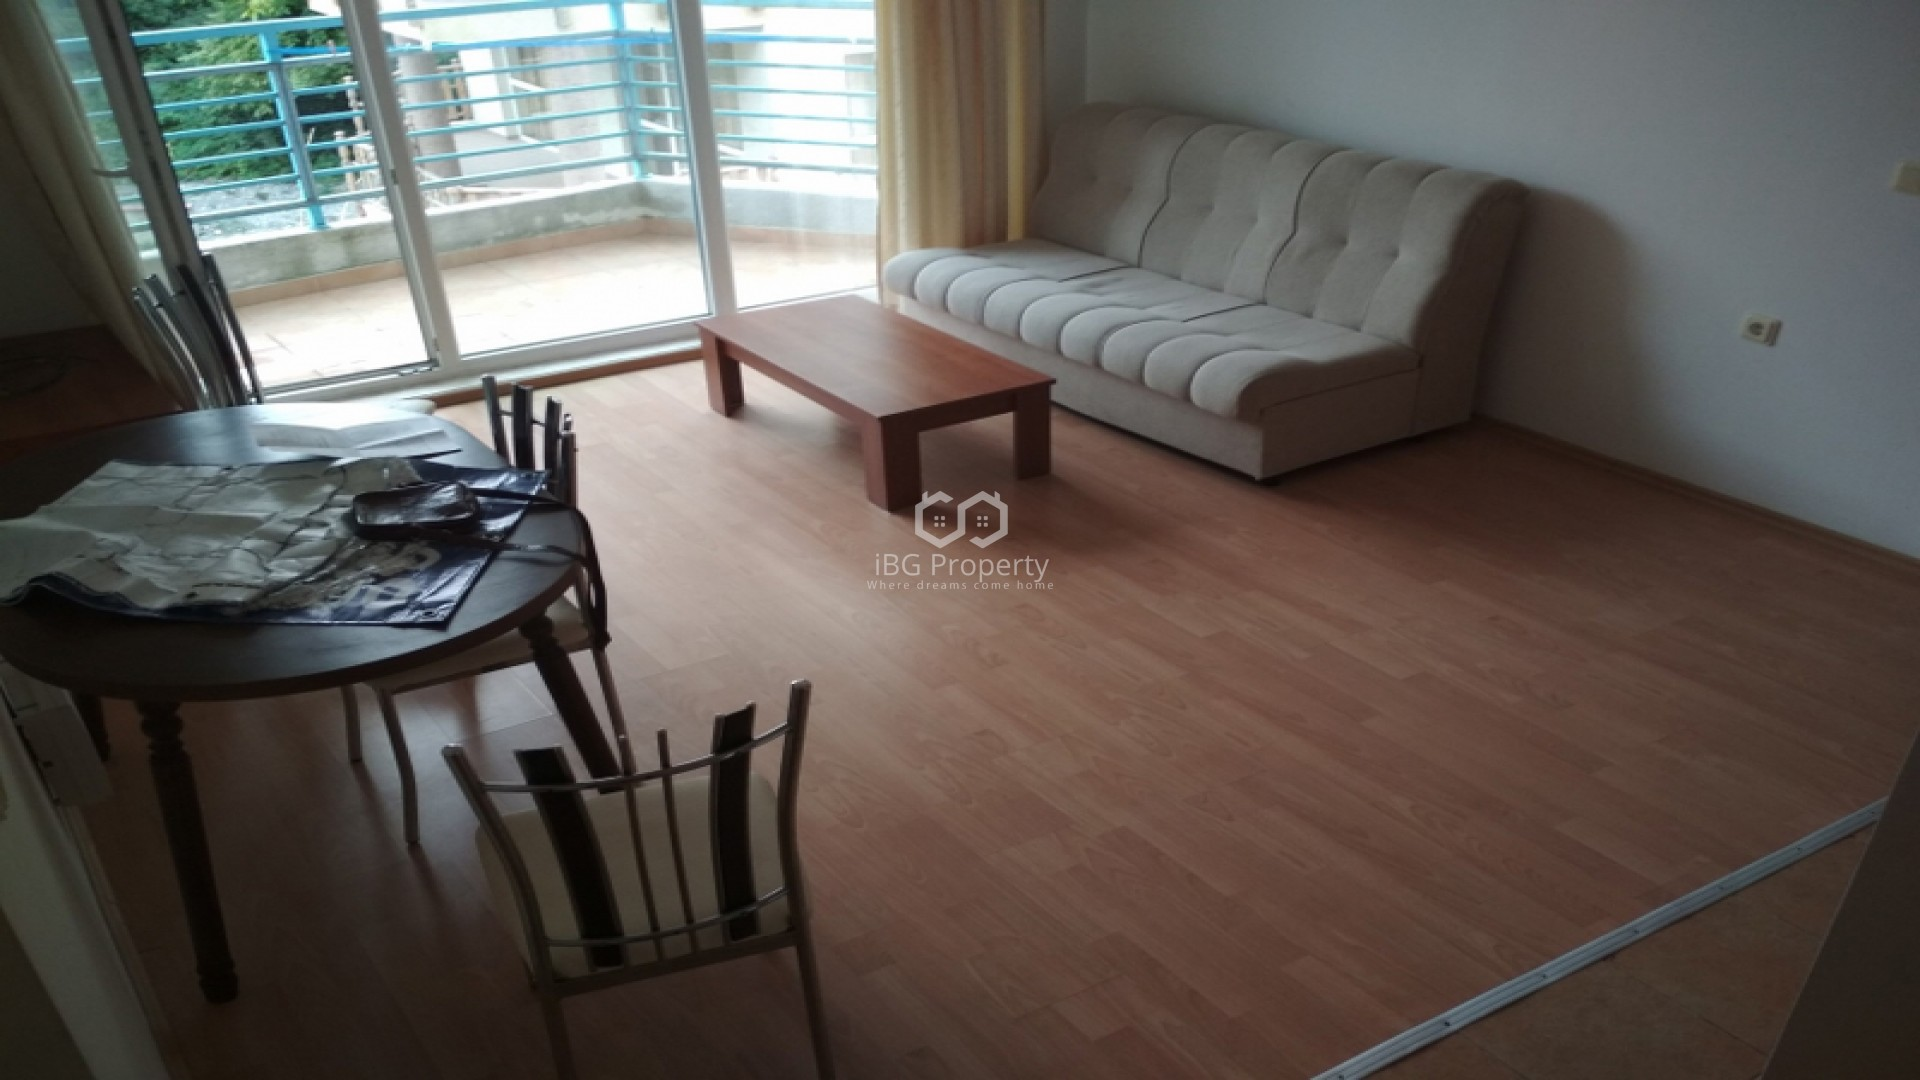 One bedroom apartment Balchik 54 m2